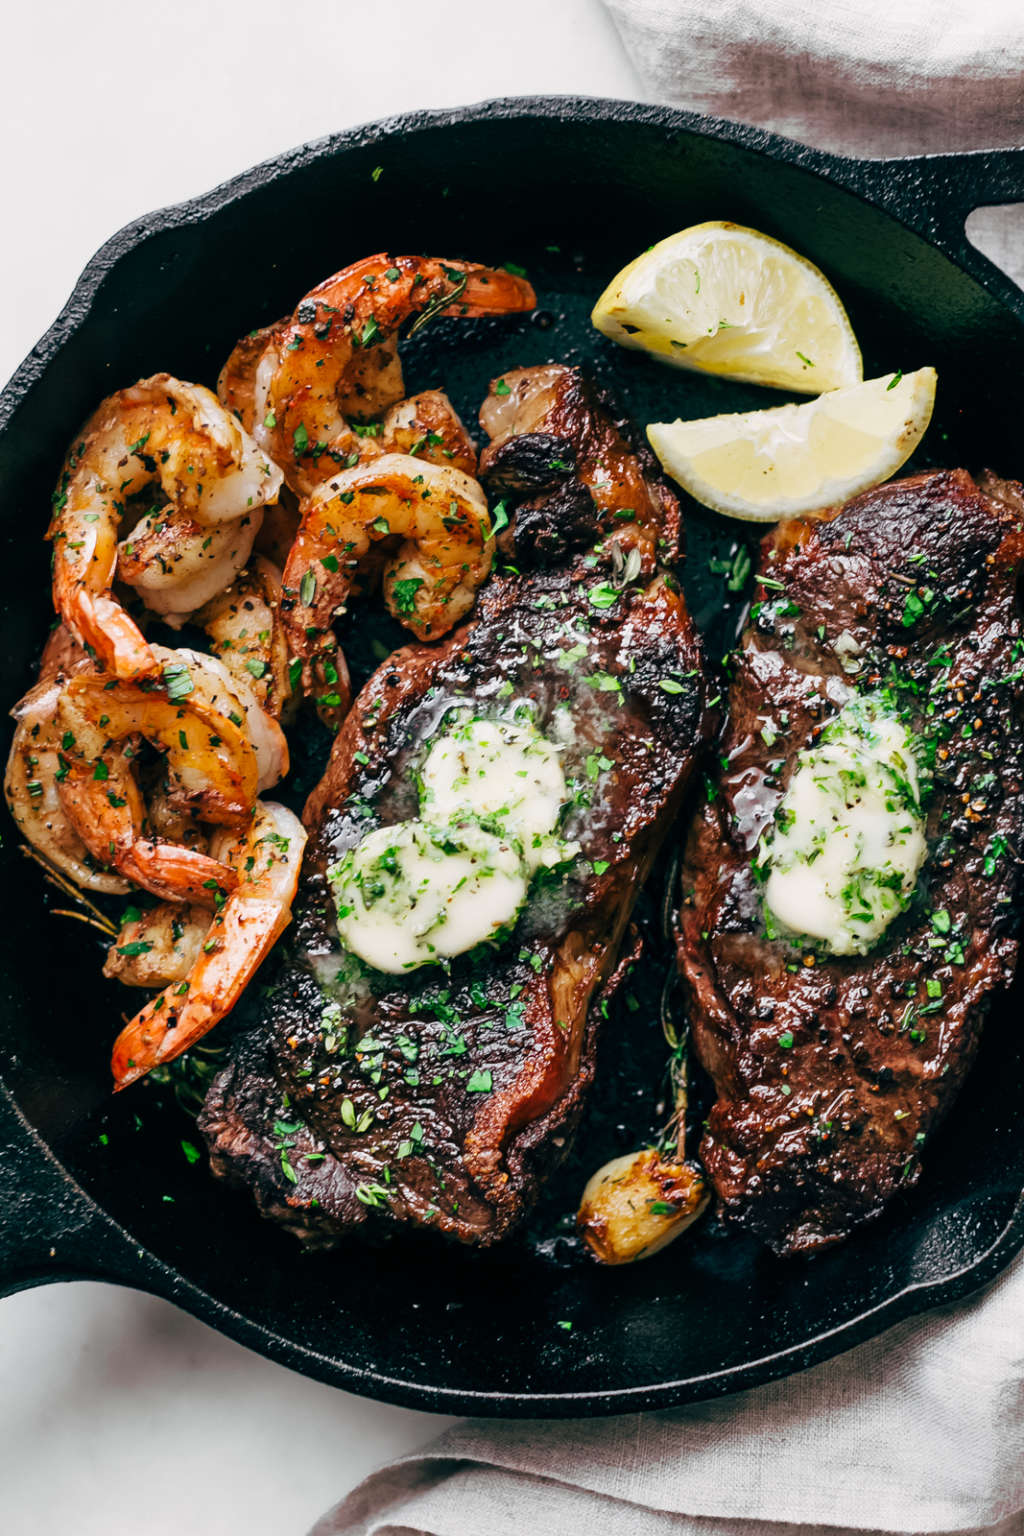 Treat Yourself to Steak and Shrimp with Garlic Butter